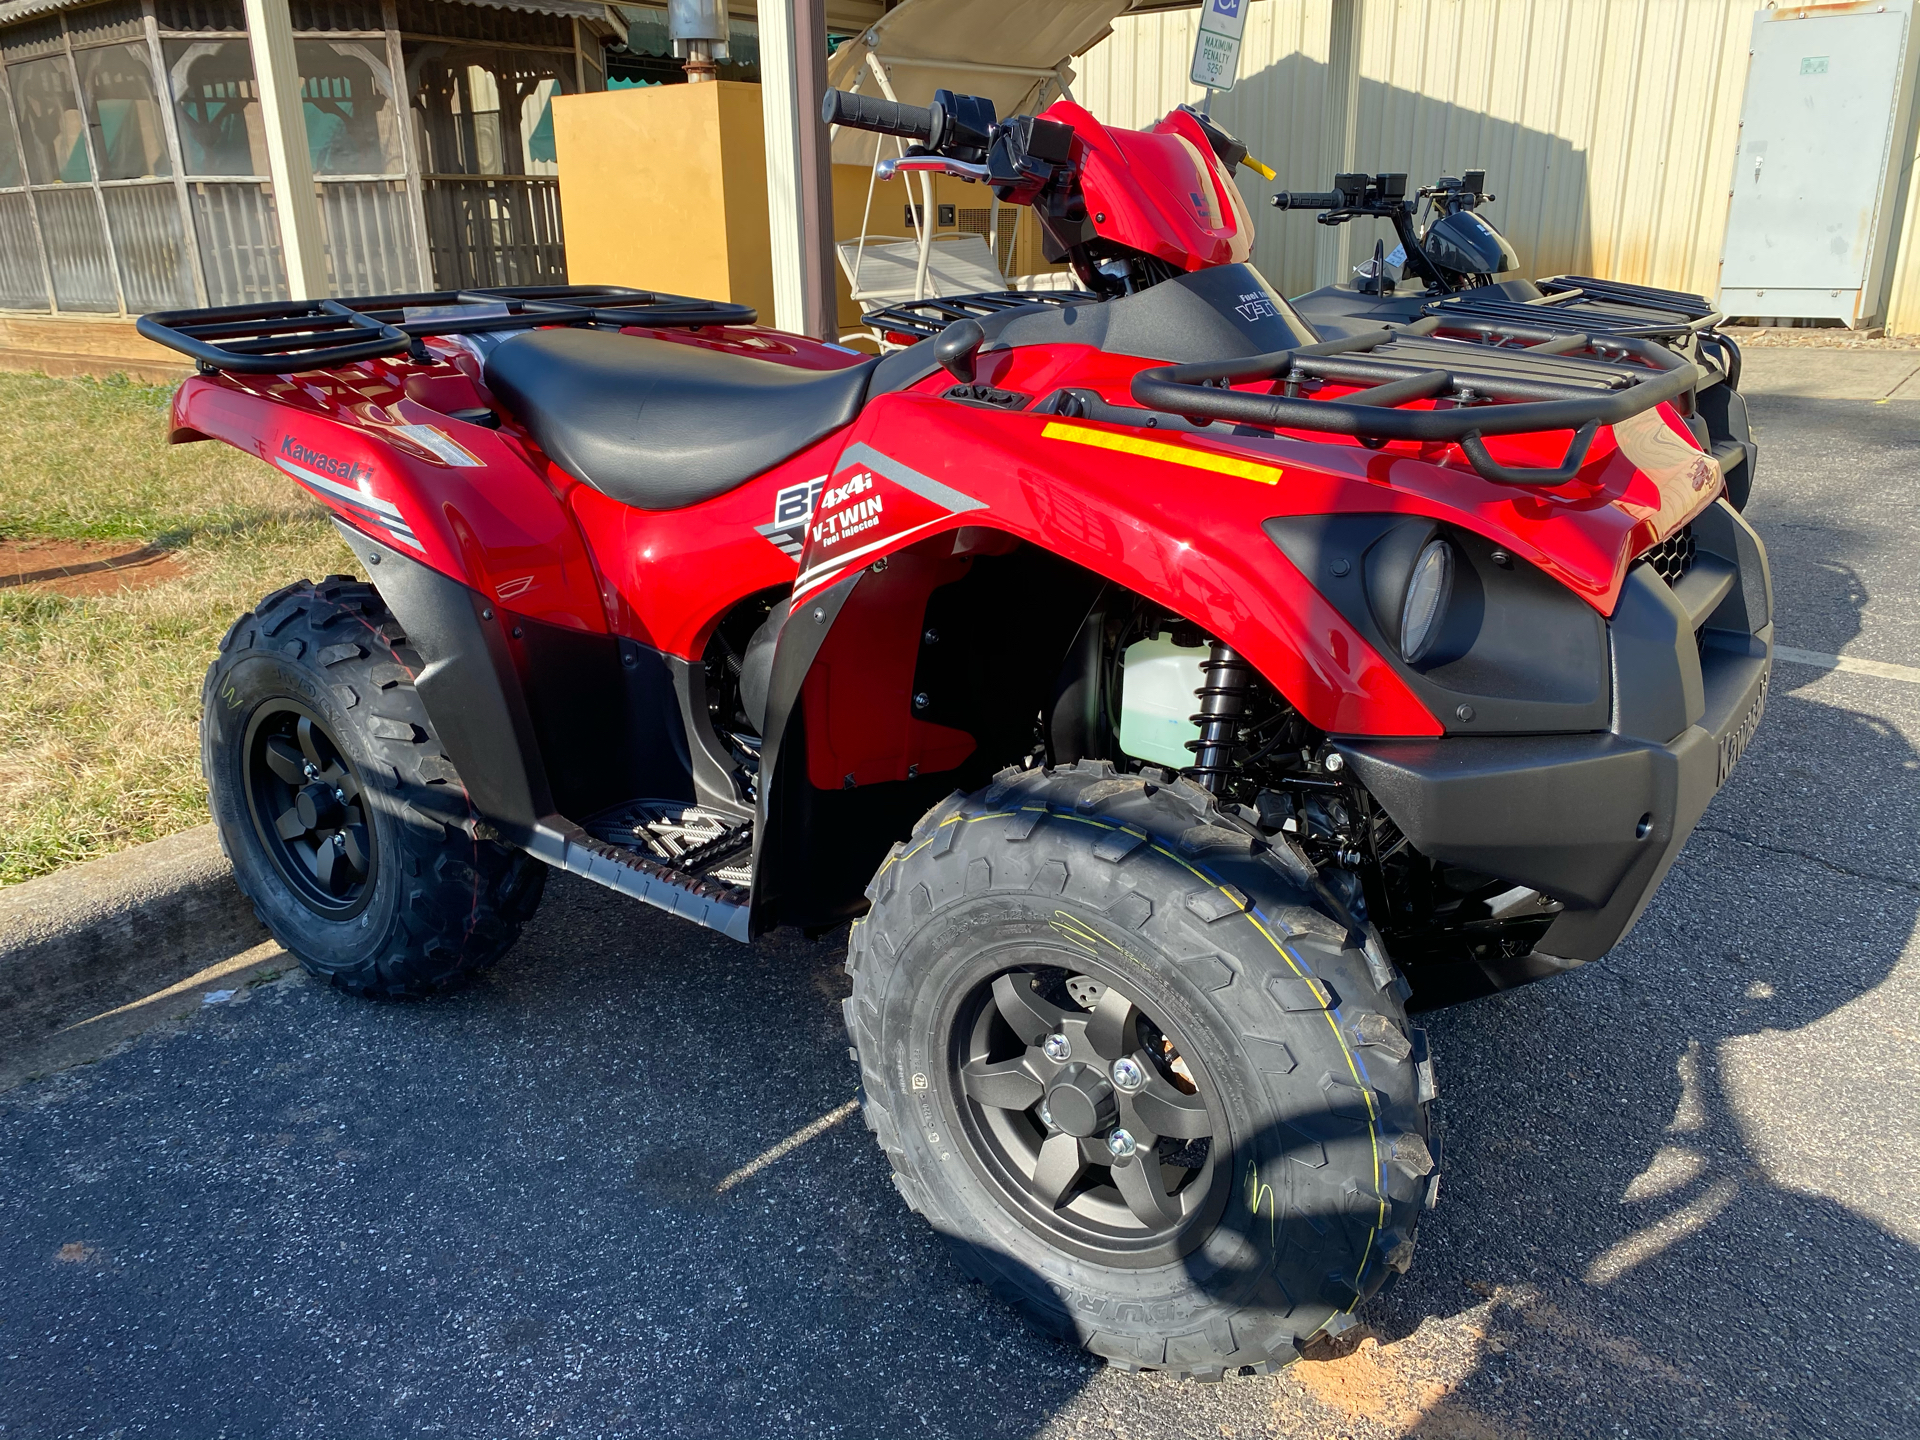 2021 Kawasaki Brute Force 750 4x4i in Statesville, North Carolina - Photo 2